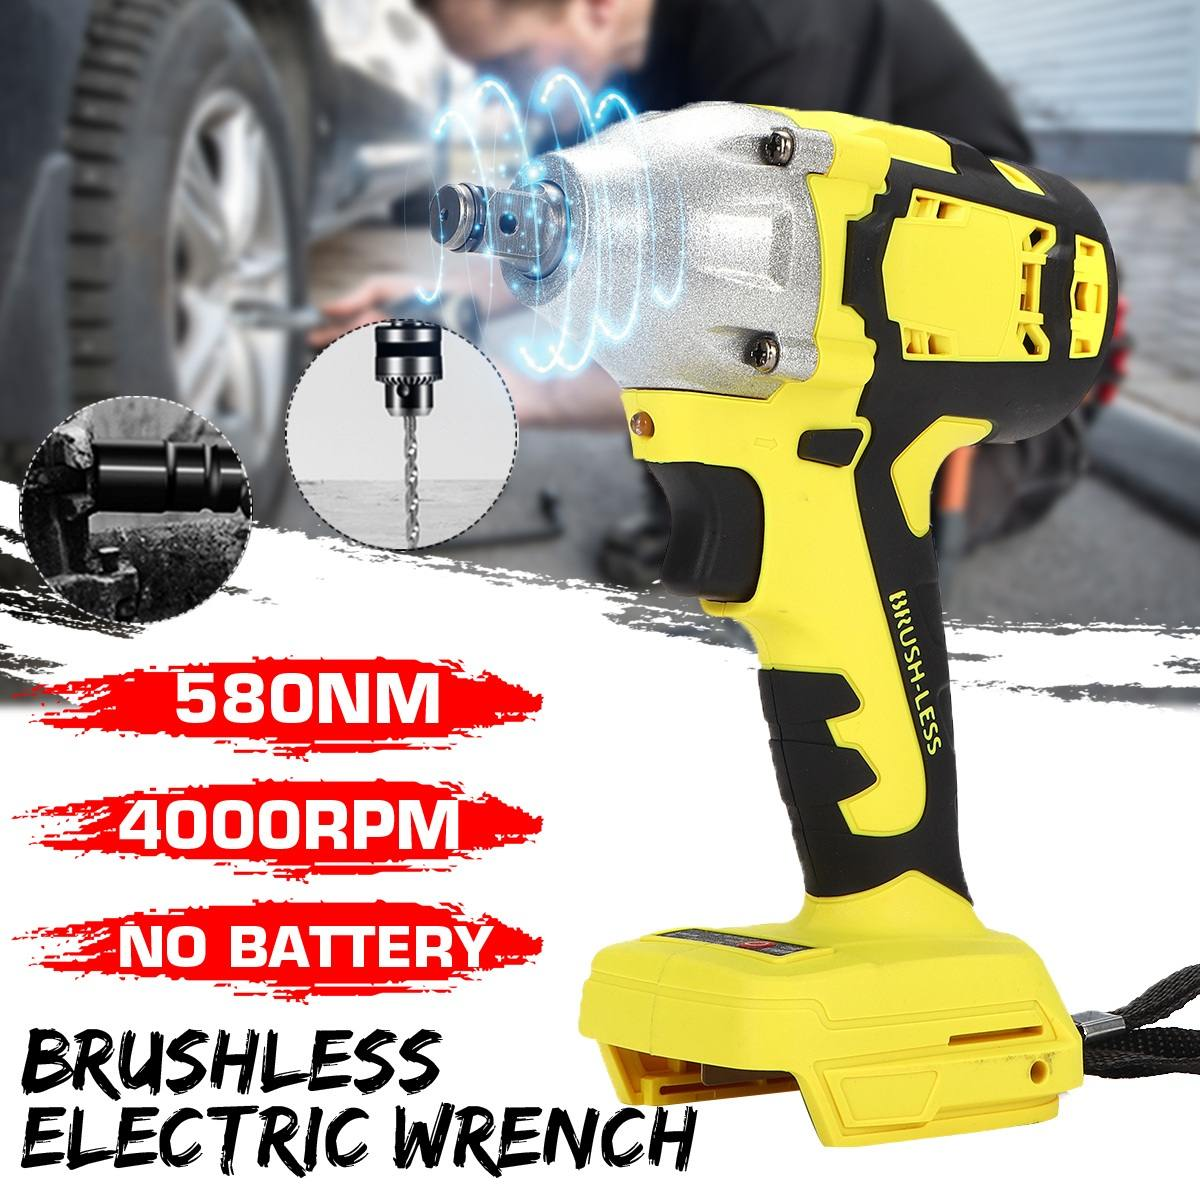 18V 580Nm Electric Brushless Impact Wrench Replacement 1/2 Socket Cordless Wrench 4000rpm Power Tool Without Battery&Accessories